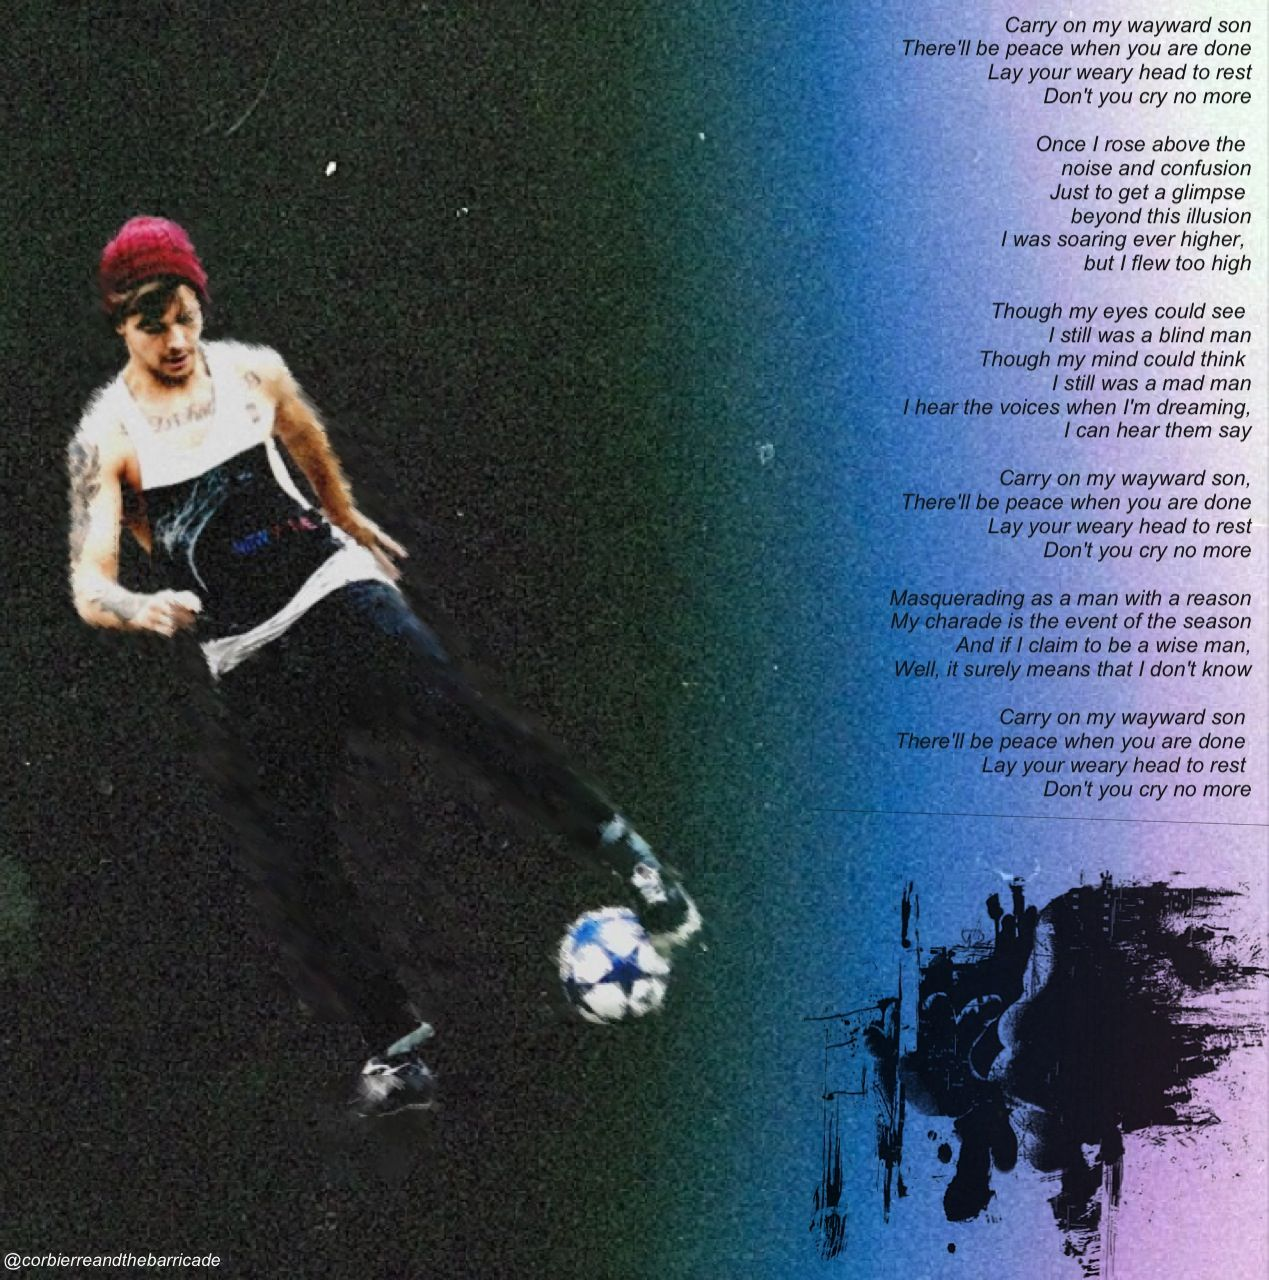 Louis Tomlinson - Carry on wayward son texture credits to